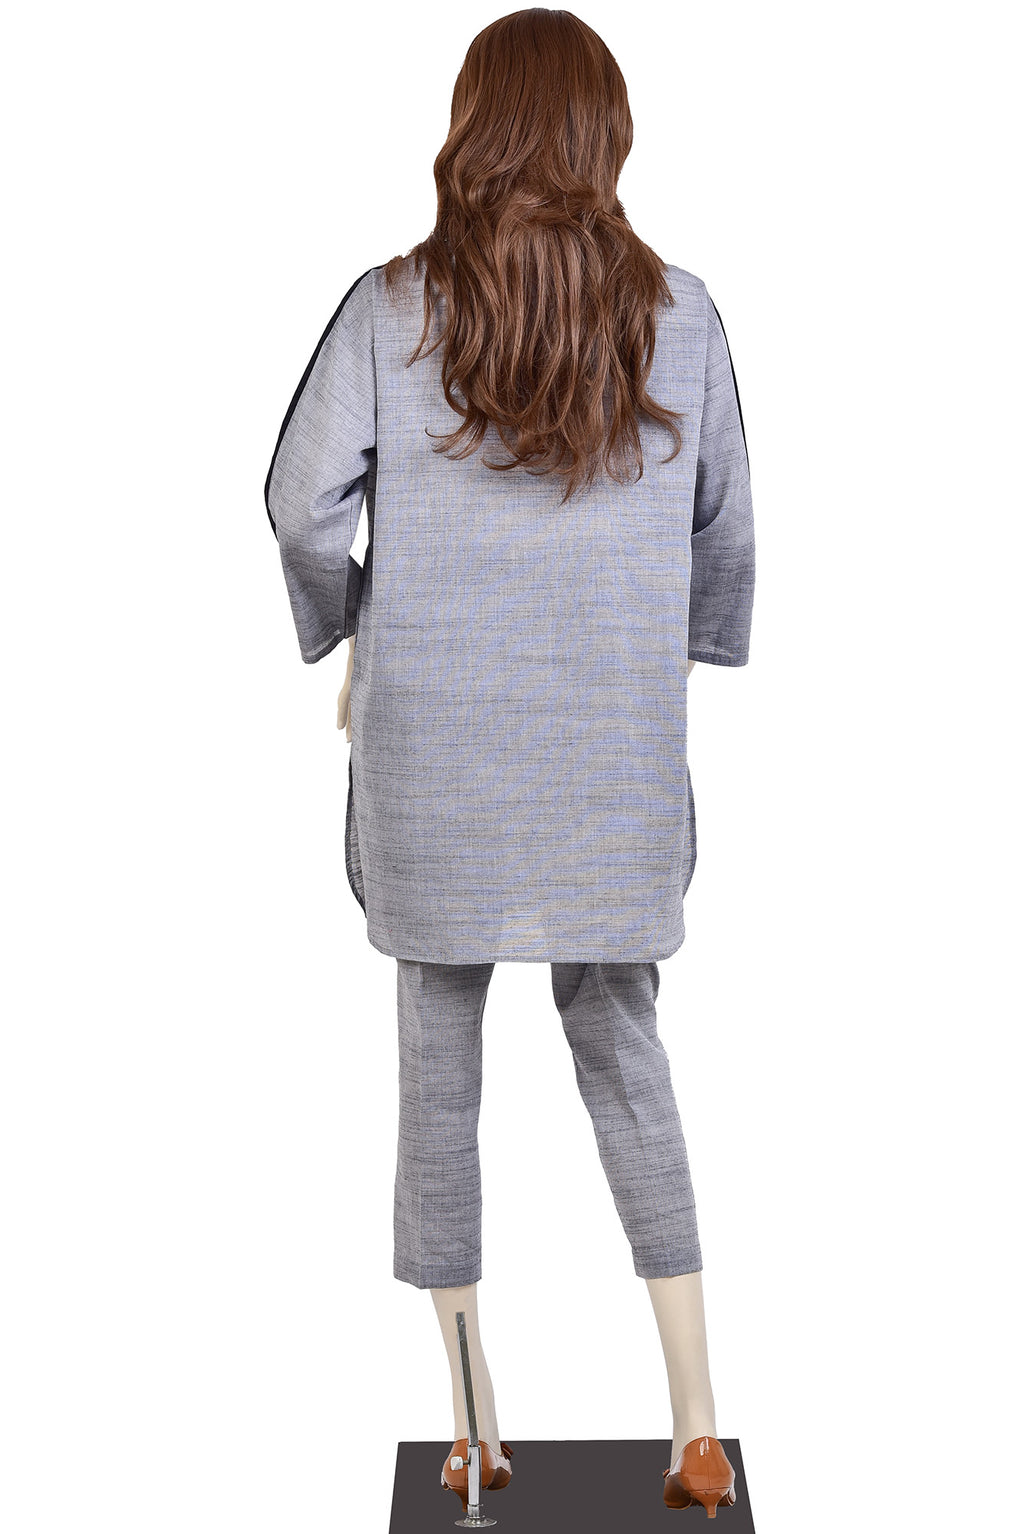 products/SP-308_GREY_BACK.jpg